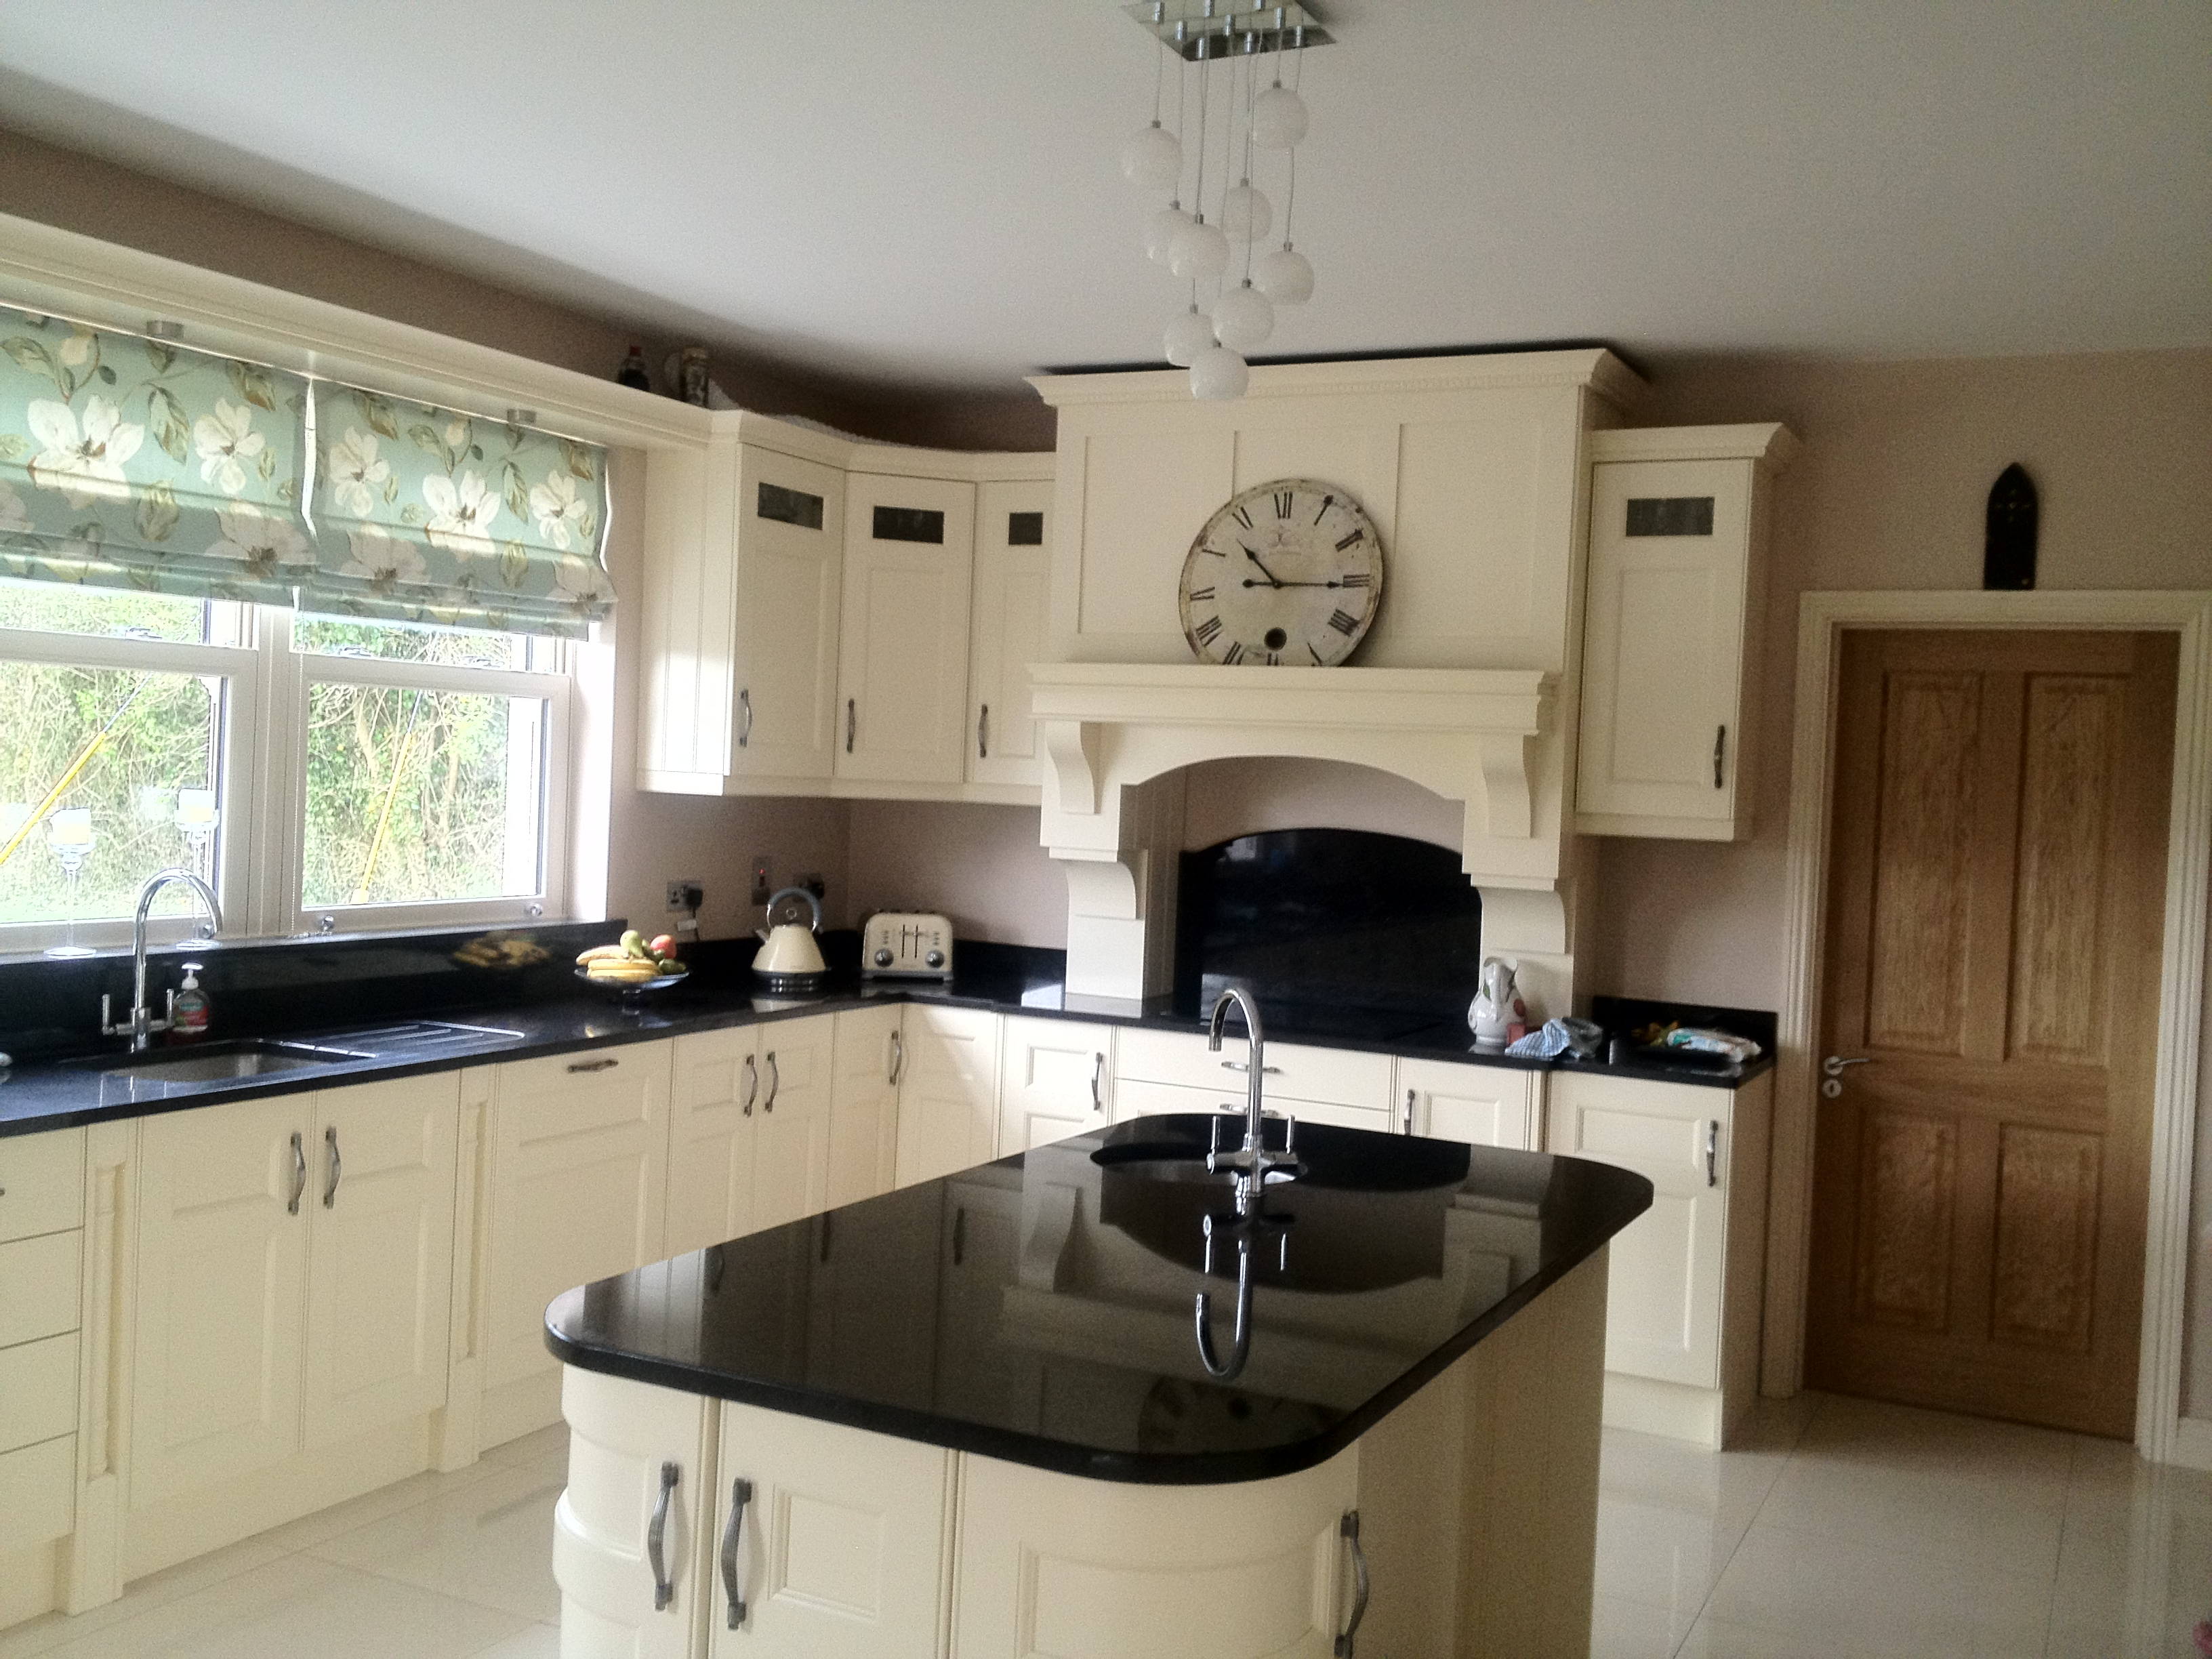 Granite Worktops For Kitchens Classic Damian Mcgoona Kitchens